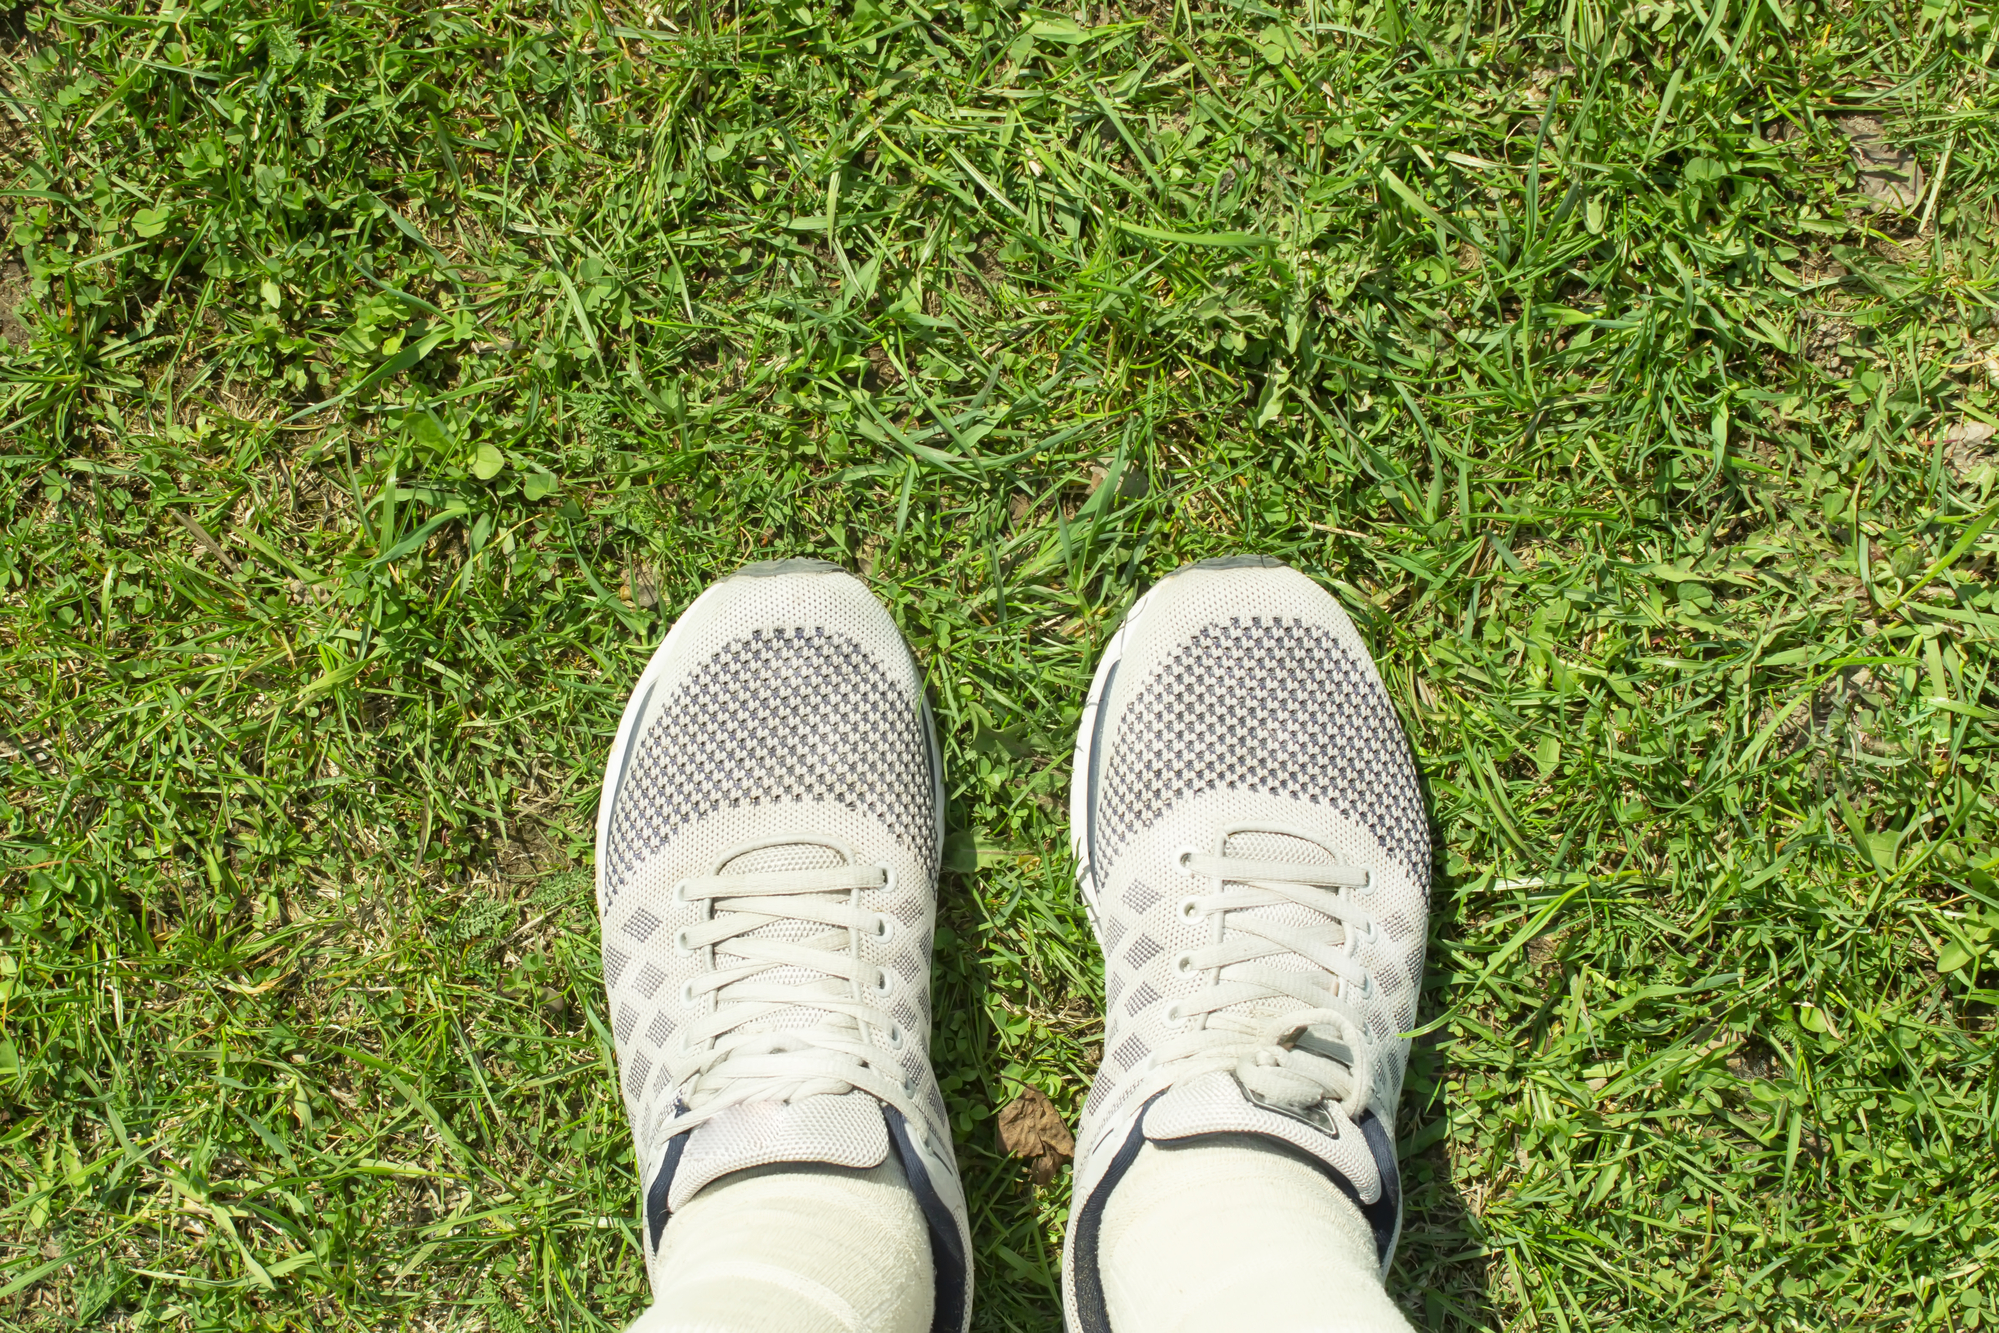 Best Grounding Shoes